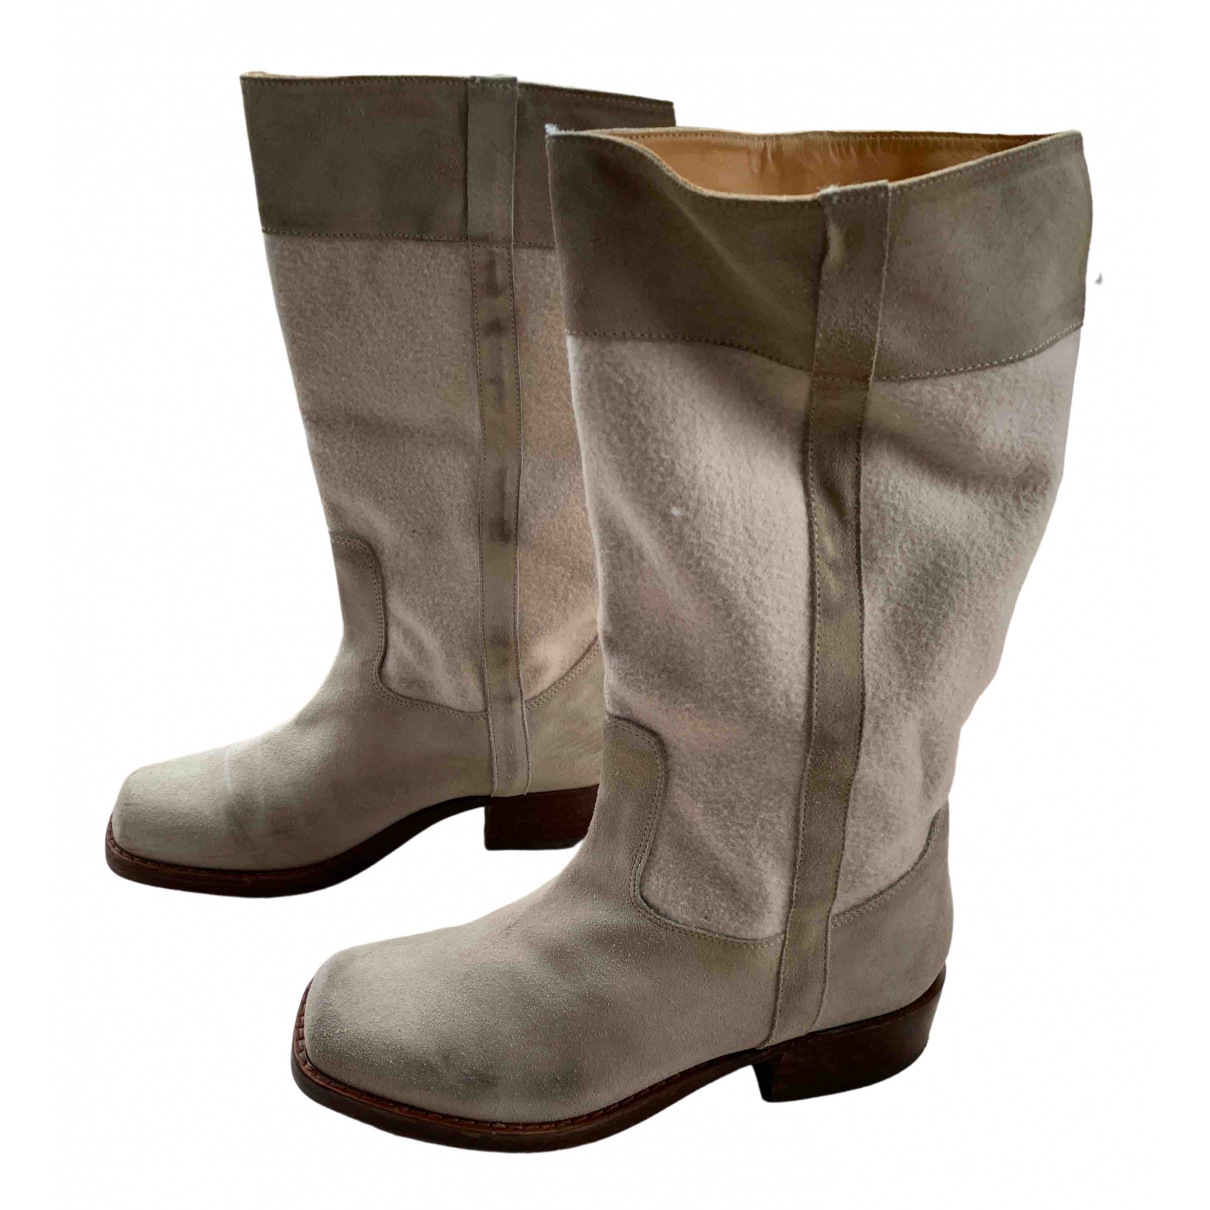 Robert Clergerie N Beige Leather Boots for Women 6 UK